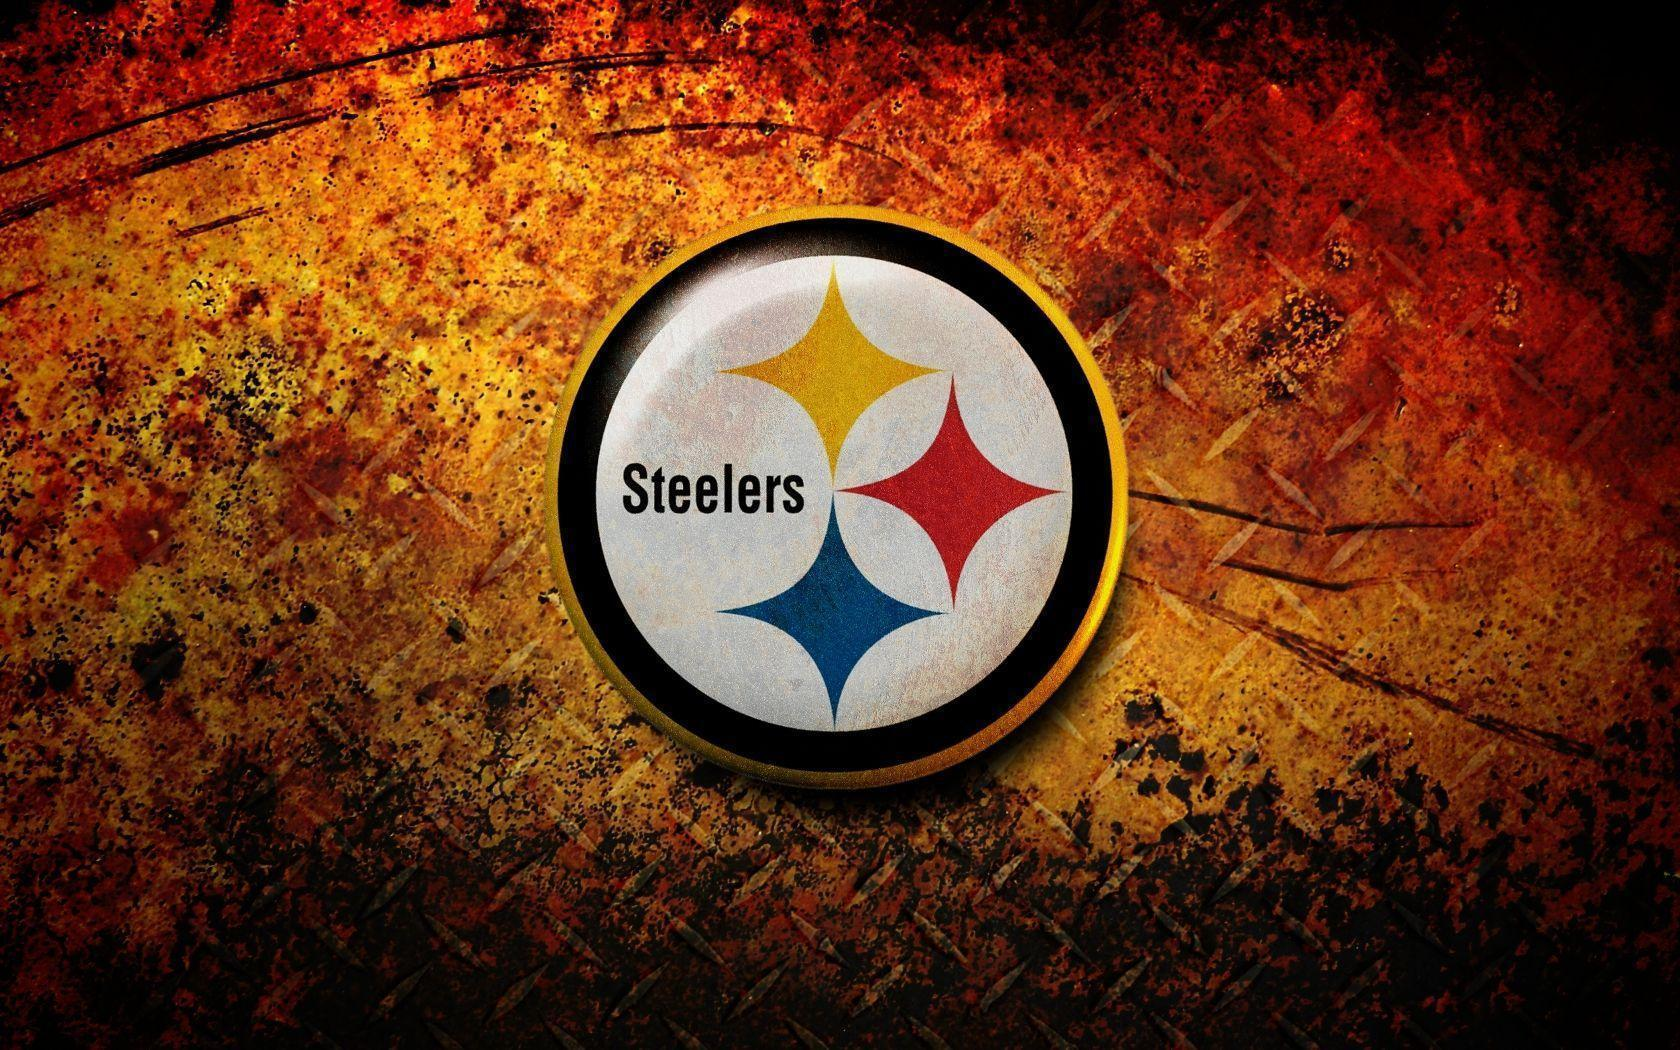 Steelers Wallpapers 2016 1680x1050